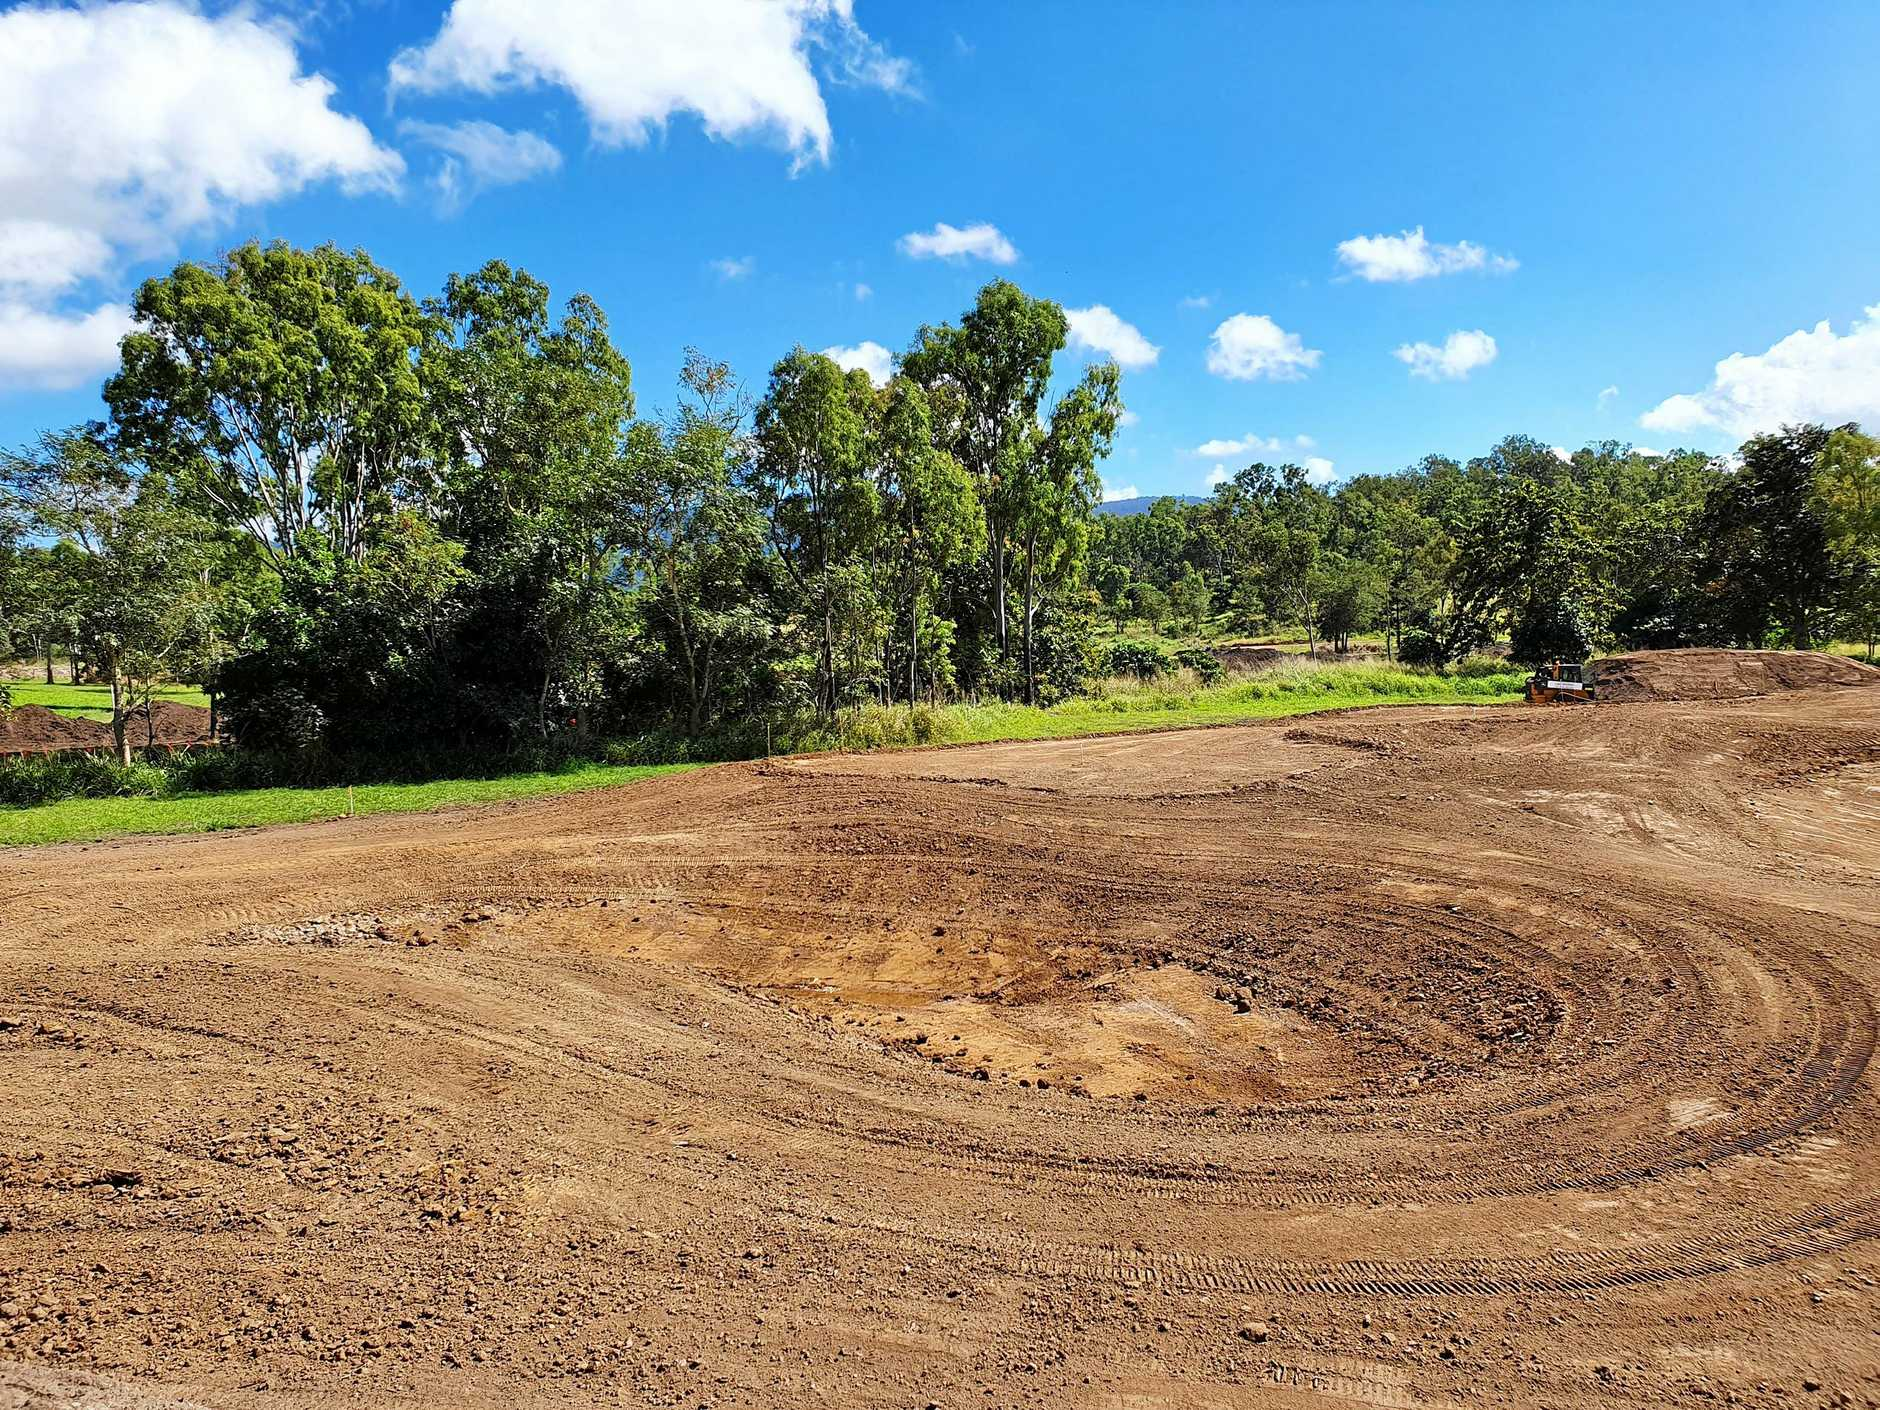 Construction of a bunker at the Whitsunday Green golf course.